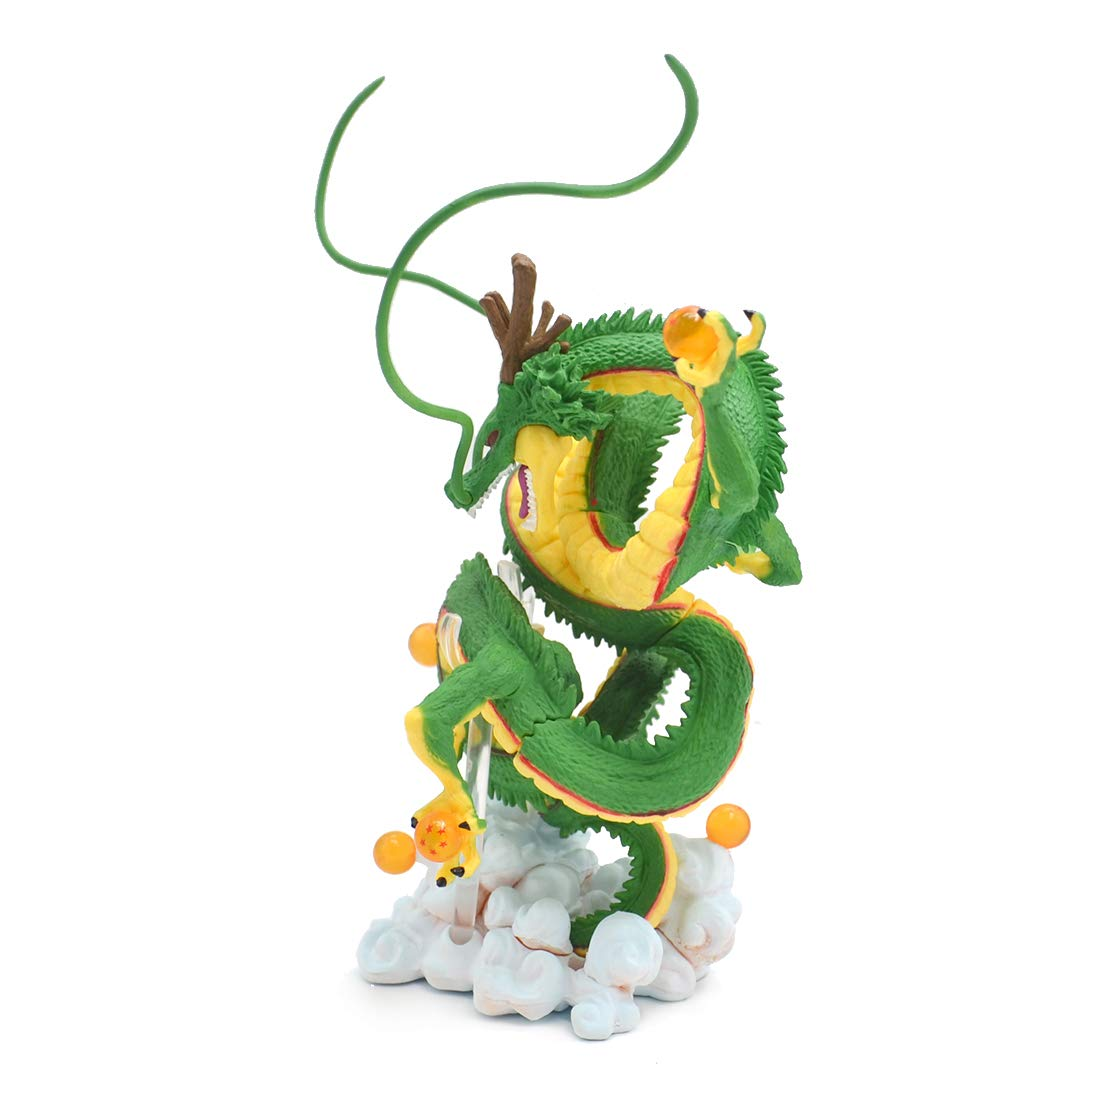 VinWin Shenron Action Figure, Dragon Ball Z Shenron Figure Collectible Statue Model Toys Best Gift